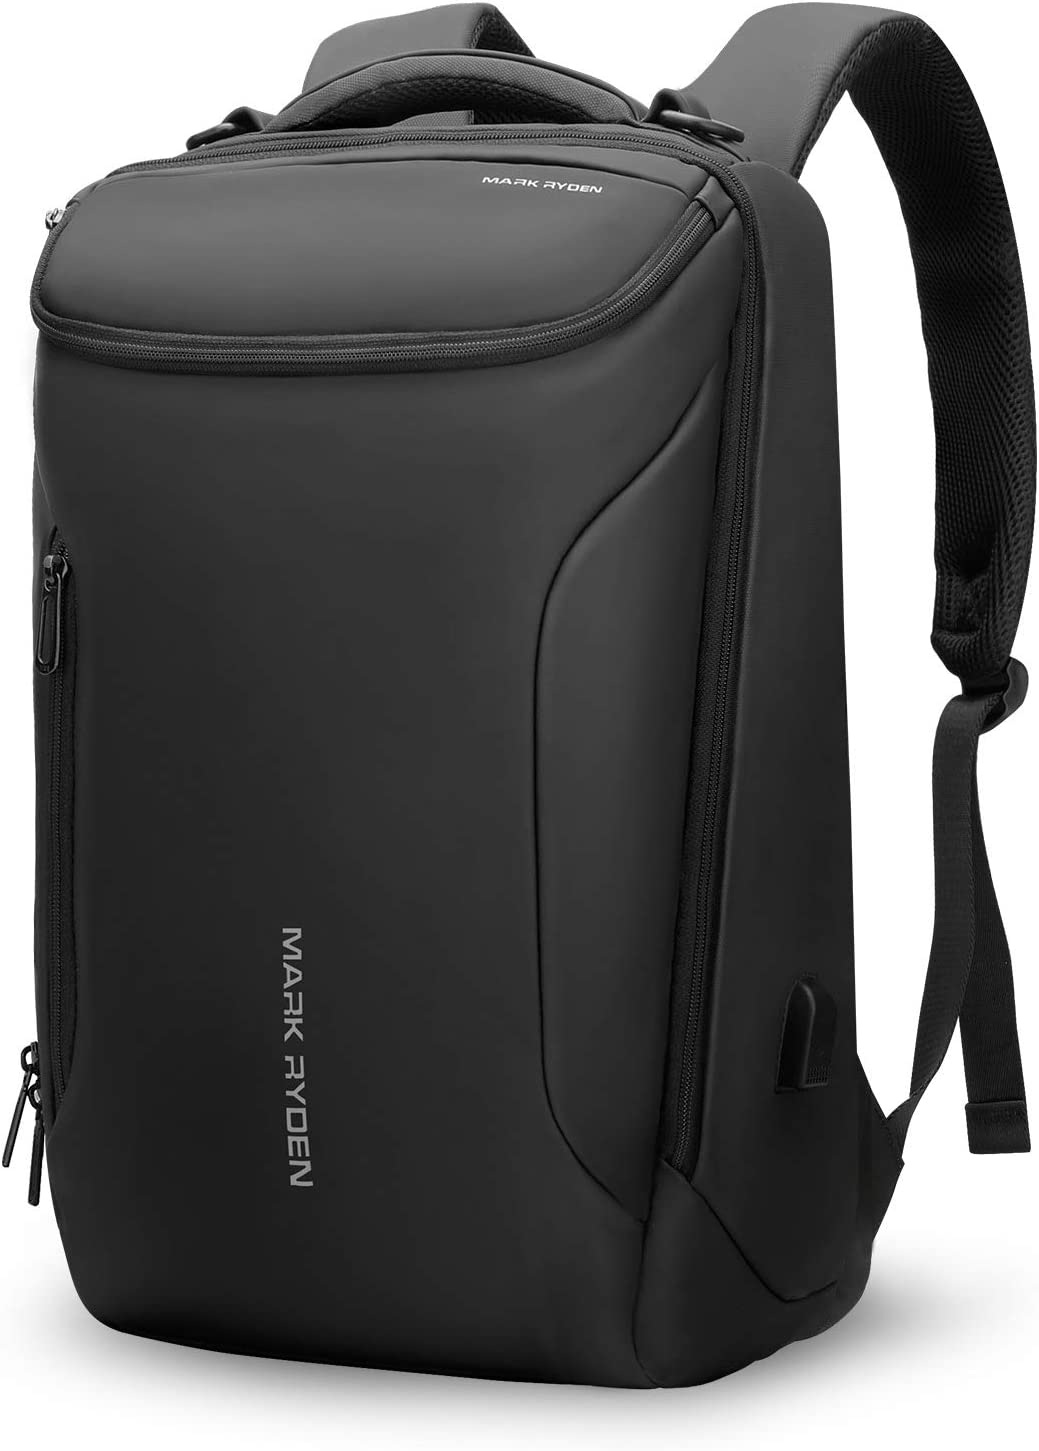 Business Backpack,MARK RYDEN Waterproof laptop Backpack for School Travel Work Flight Fits 17.3 Laptop With USB Port,30L Carry On Luggage